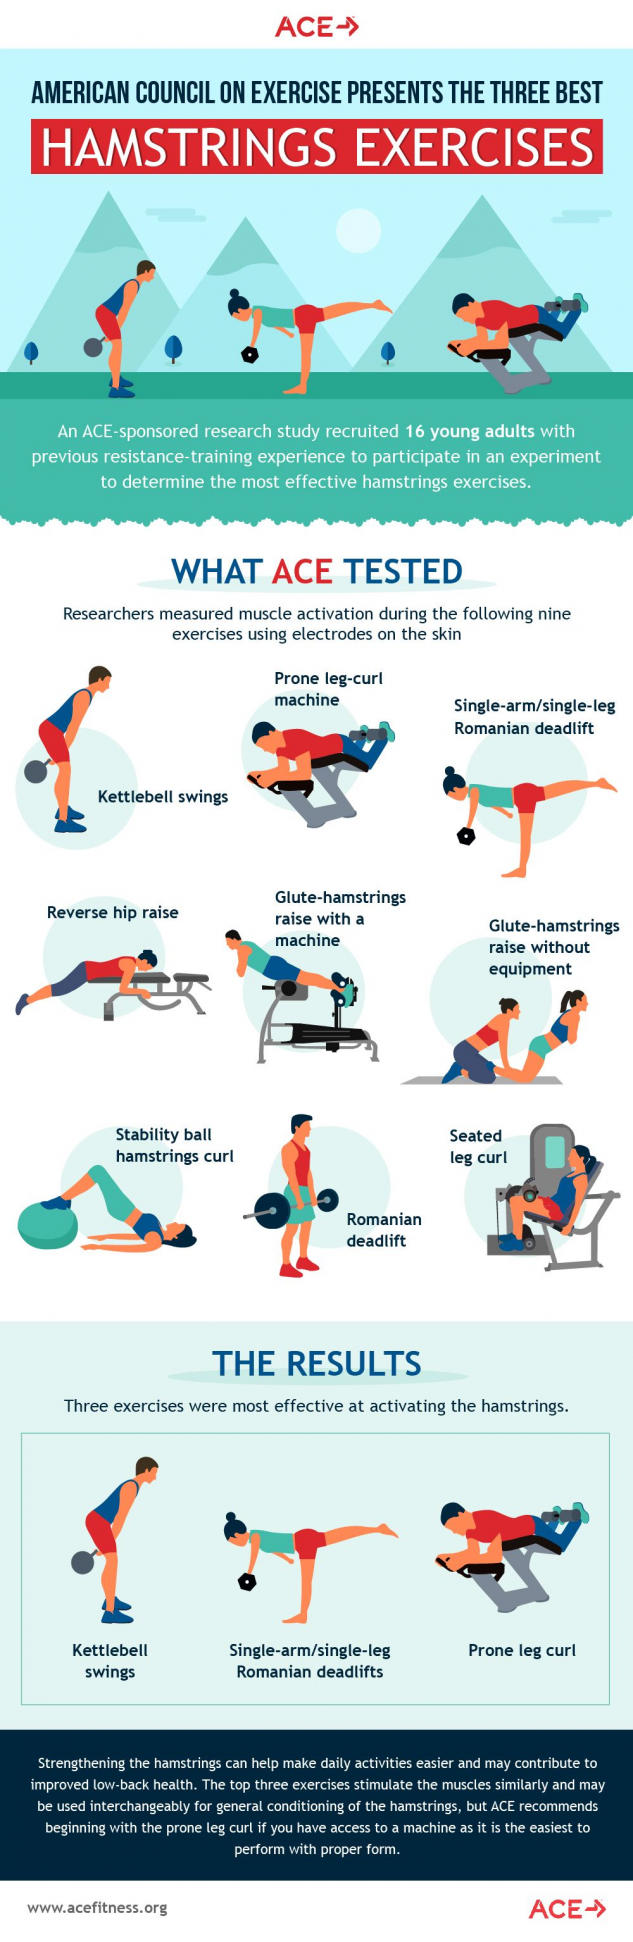 American Council on Exercise finds most efficient exercise for hamstring muscles...